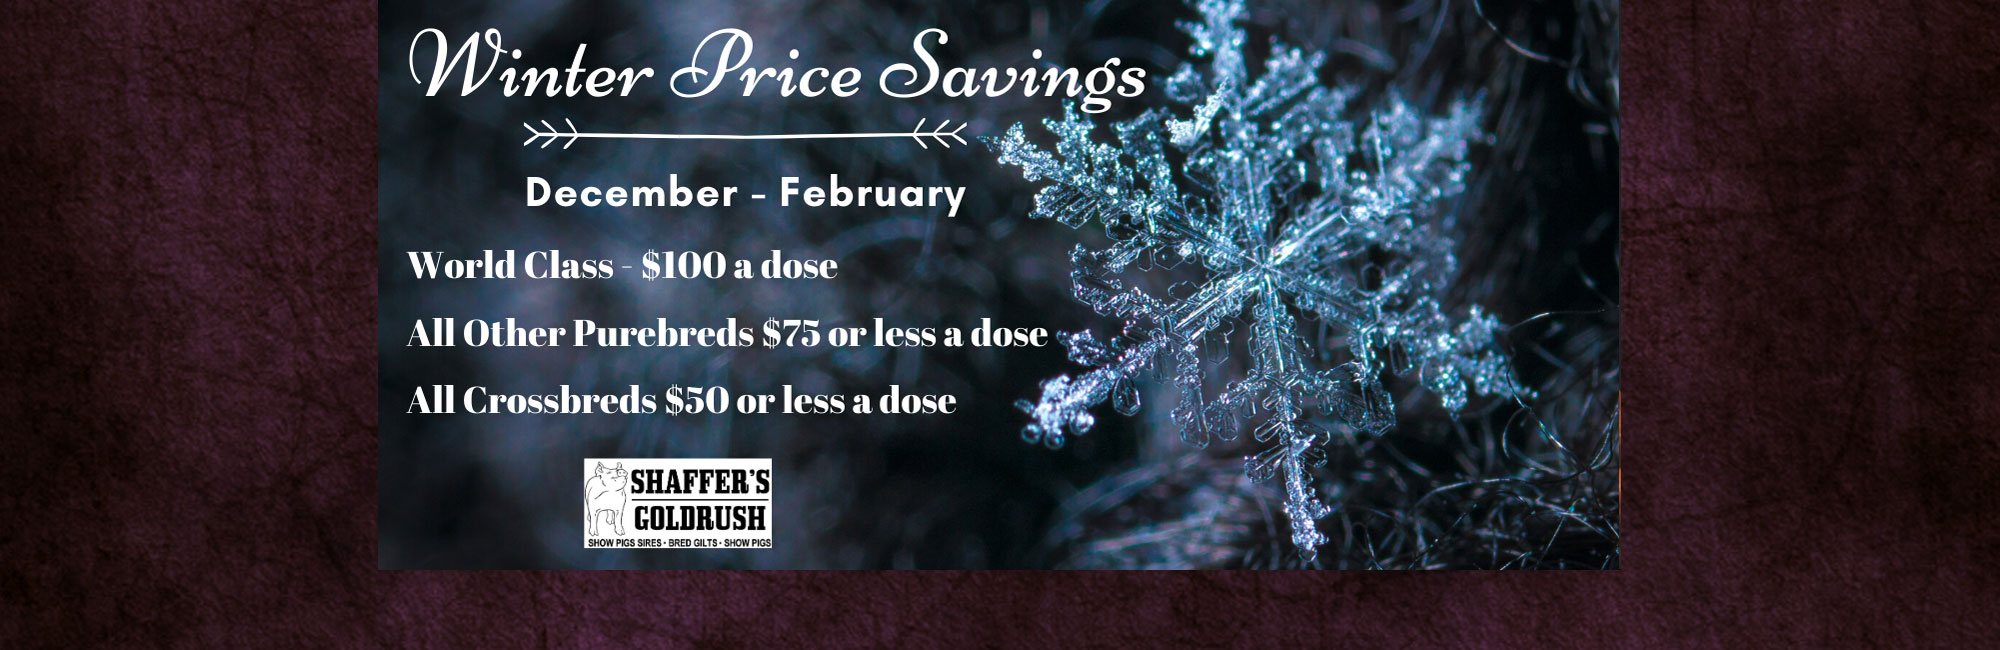 Winter Price Savings